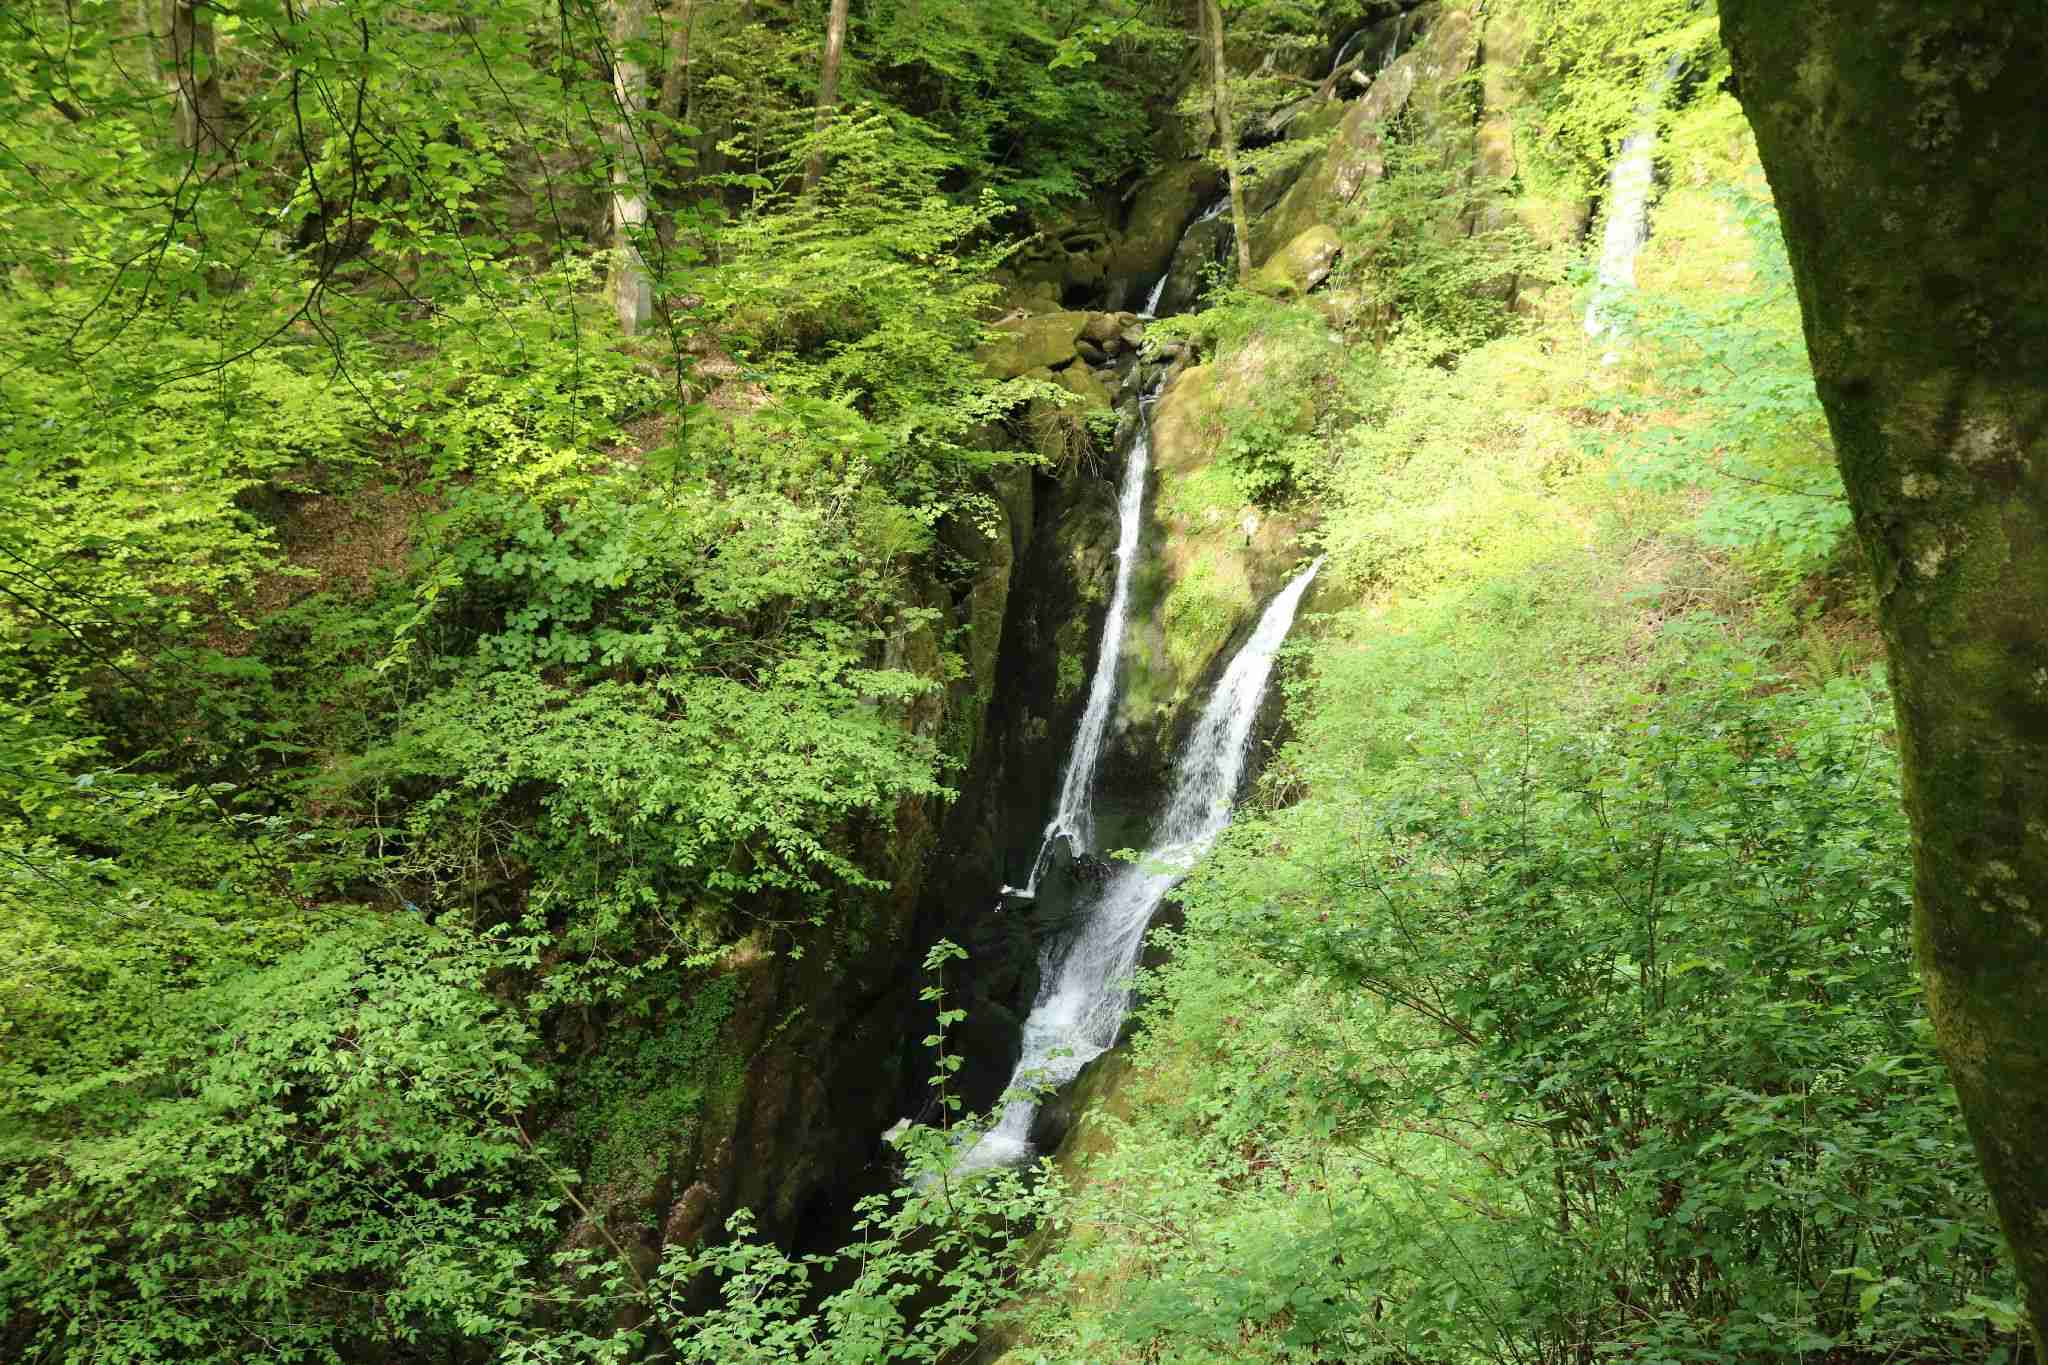 Stock ghyll force in Stock ghyll